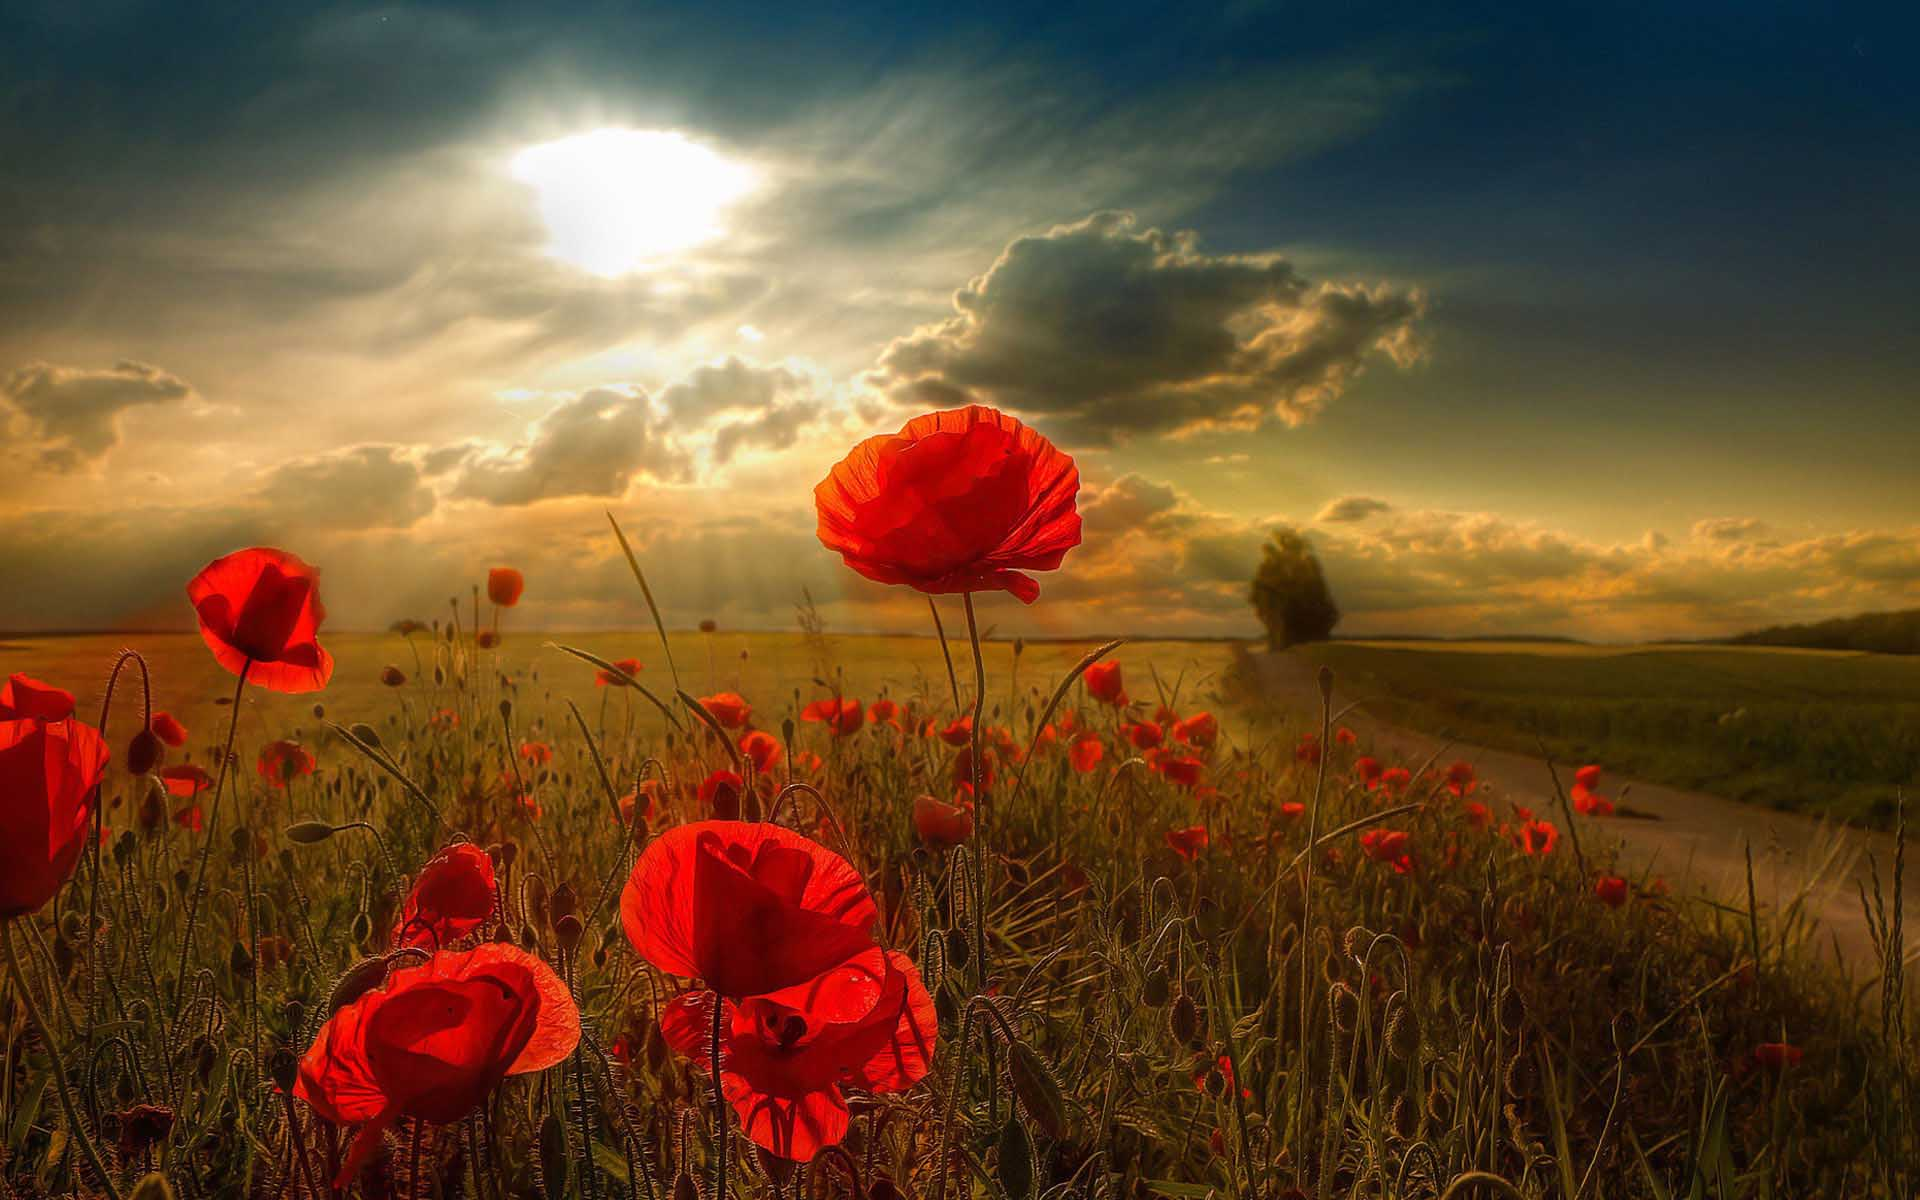 Flower-Poppies-Backgrounds-Photography-Wallpaper-1920x1200